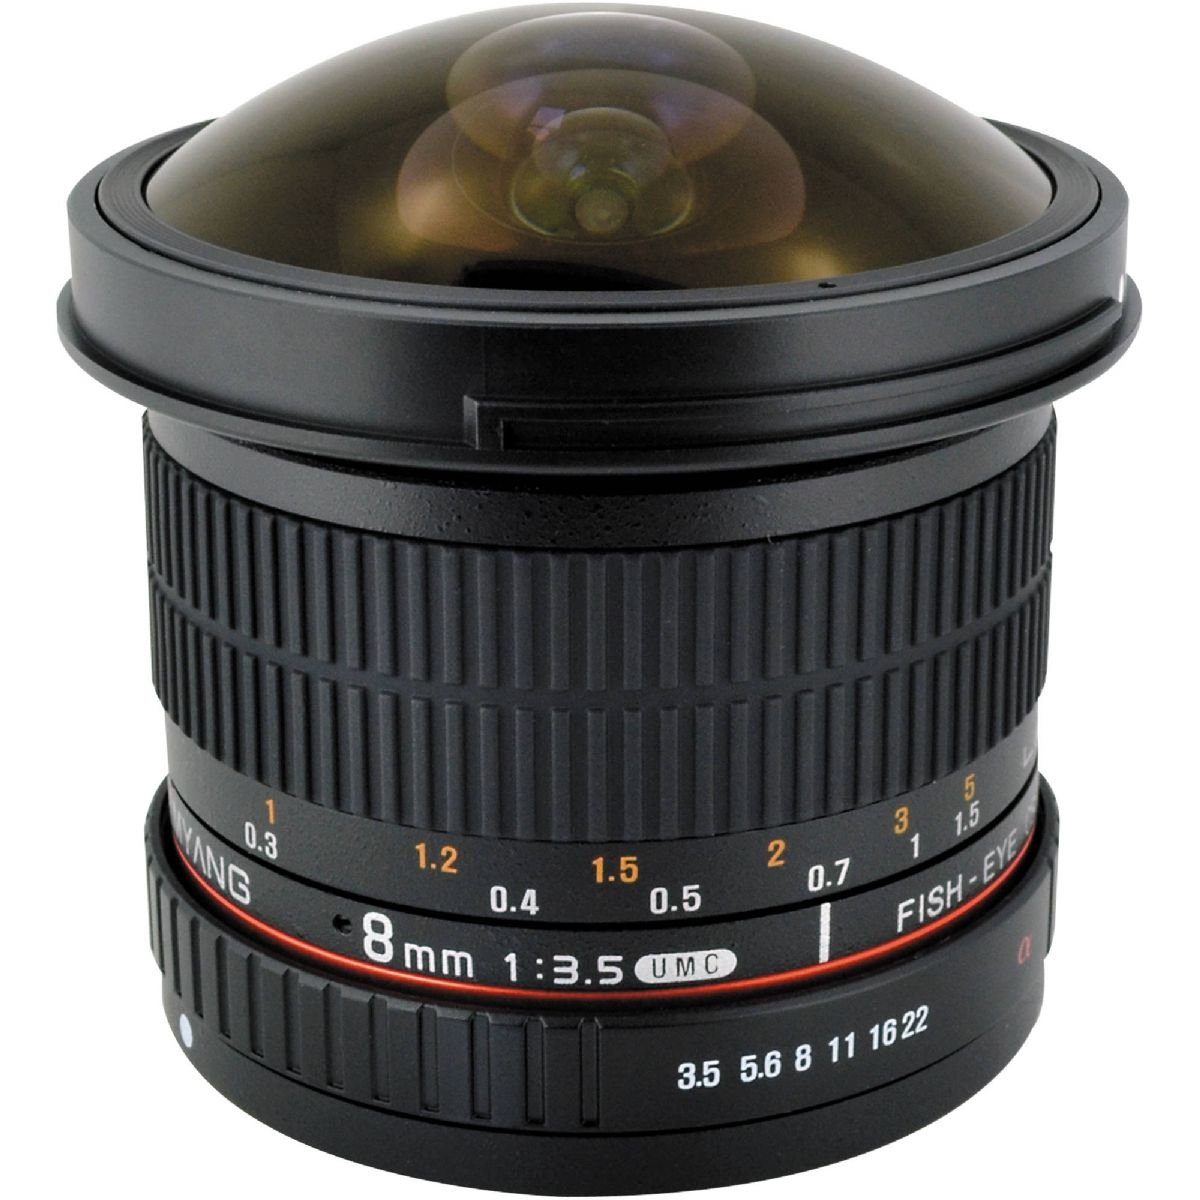 SAMYANG 8 mm f/3,5 UMC Fish-eye CS II pro Canon EOS M